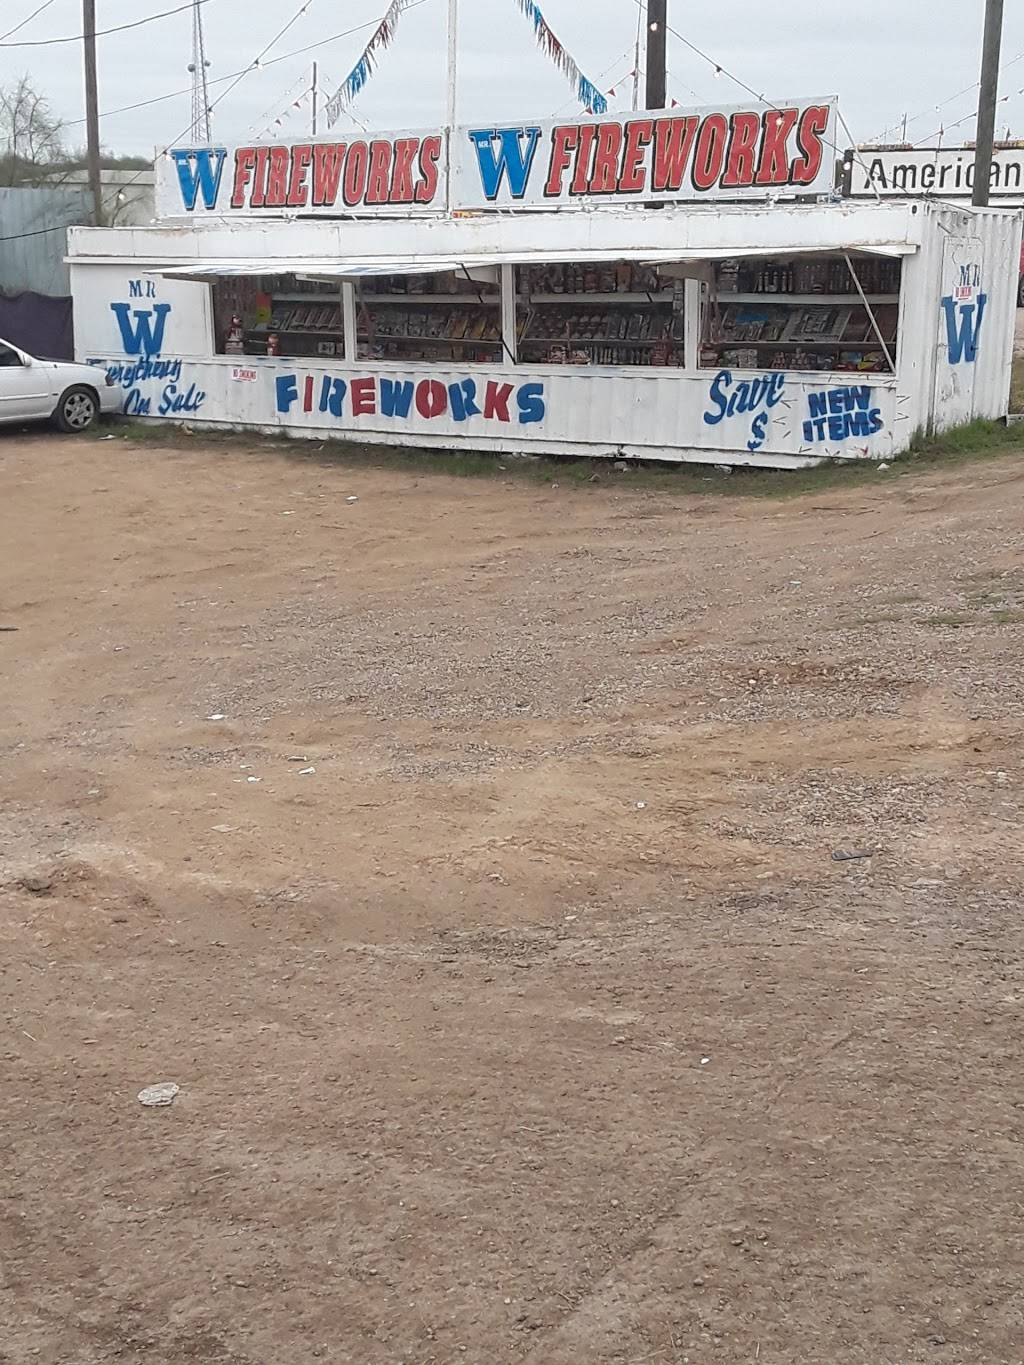 Mr. W Fireworks - store  | Photo 3 of 8 | Address: 6924 TX-359, Laredo, TX 78043, USA | Phone: (210) 622-3112